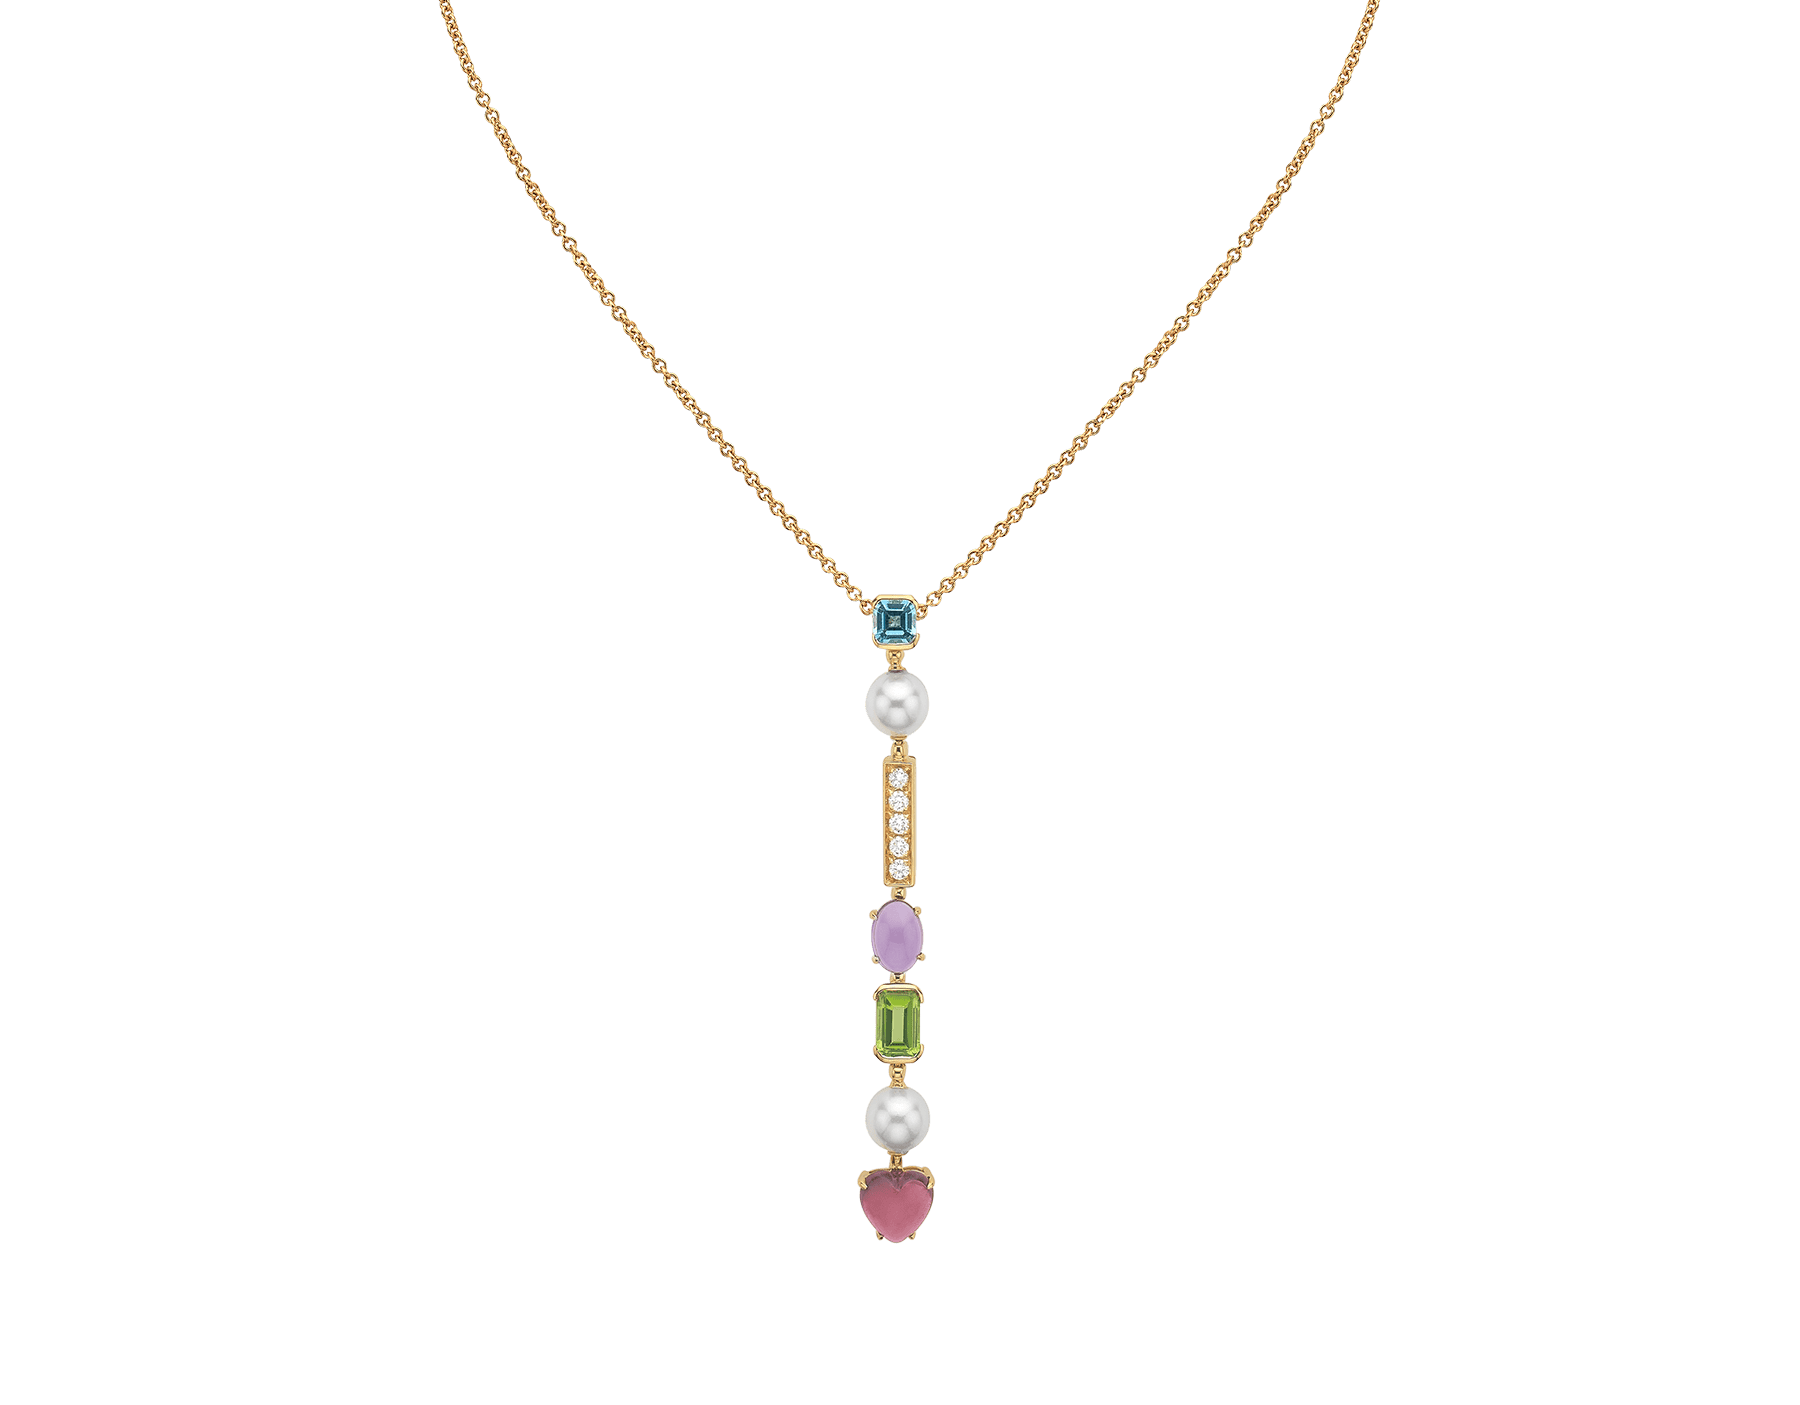 Allegra 18 kt yellow gold pendant necklace set with pink tourmaline, peridot, amethyst, blue topaz, Akoya cultured pearls and pavé diamonds 334667 image 1